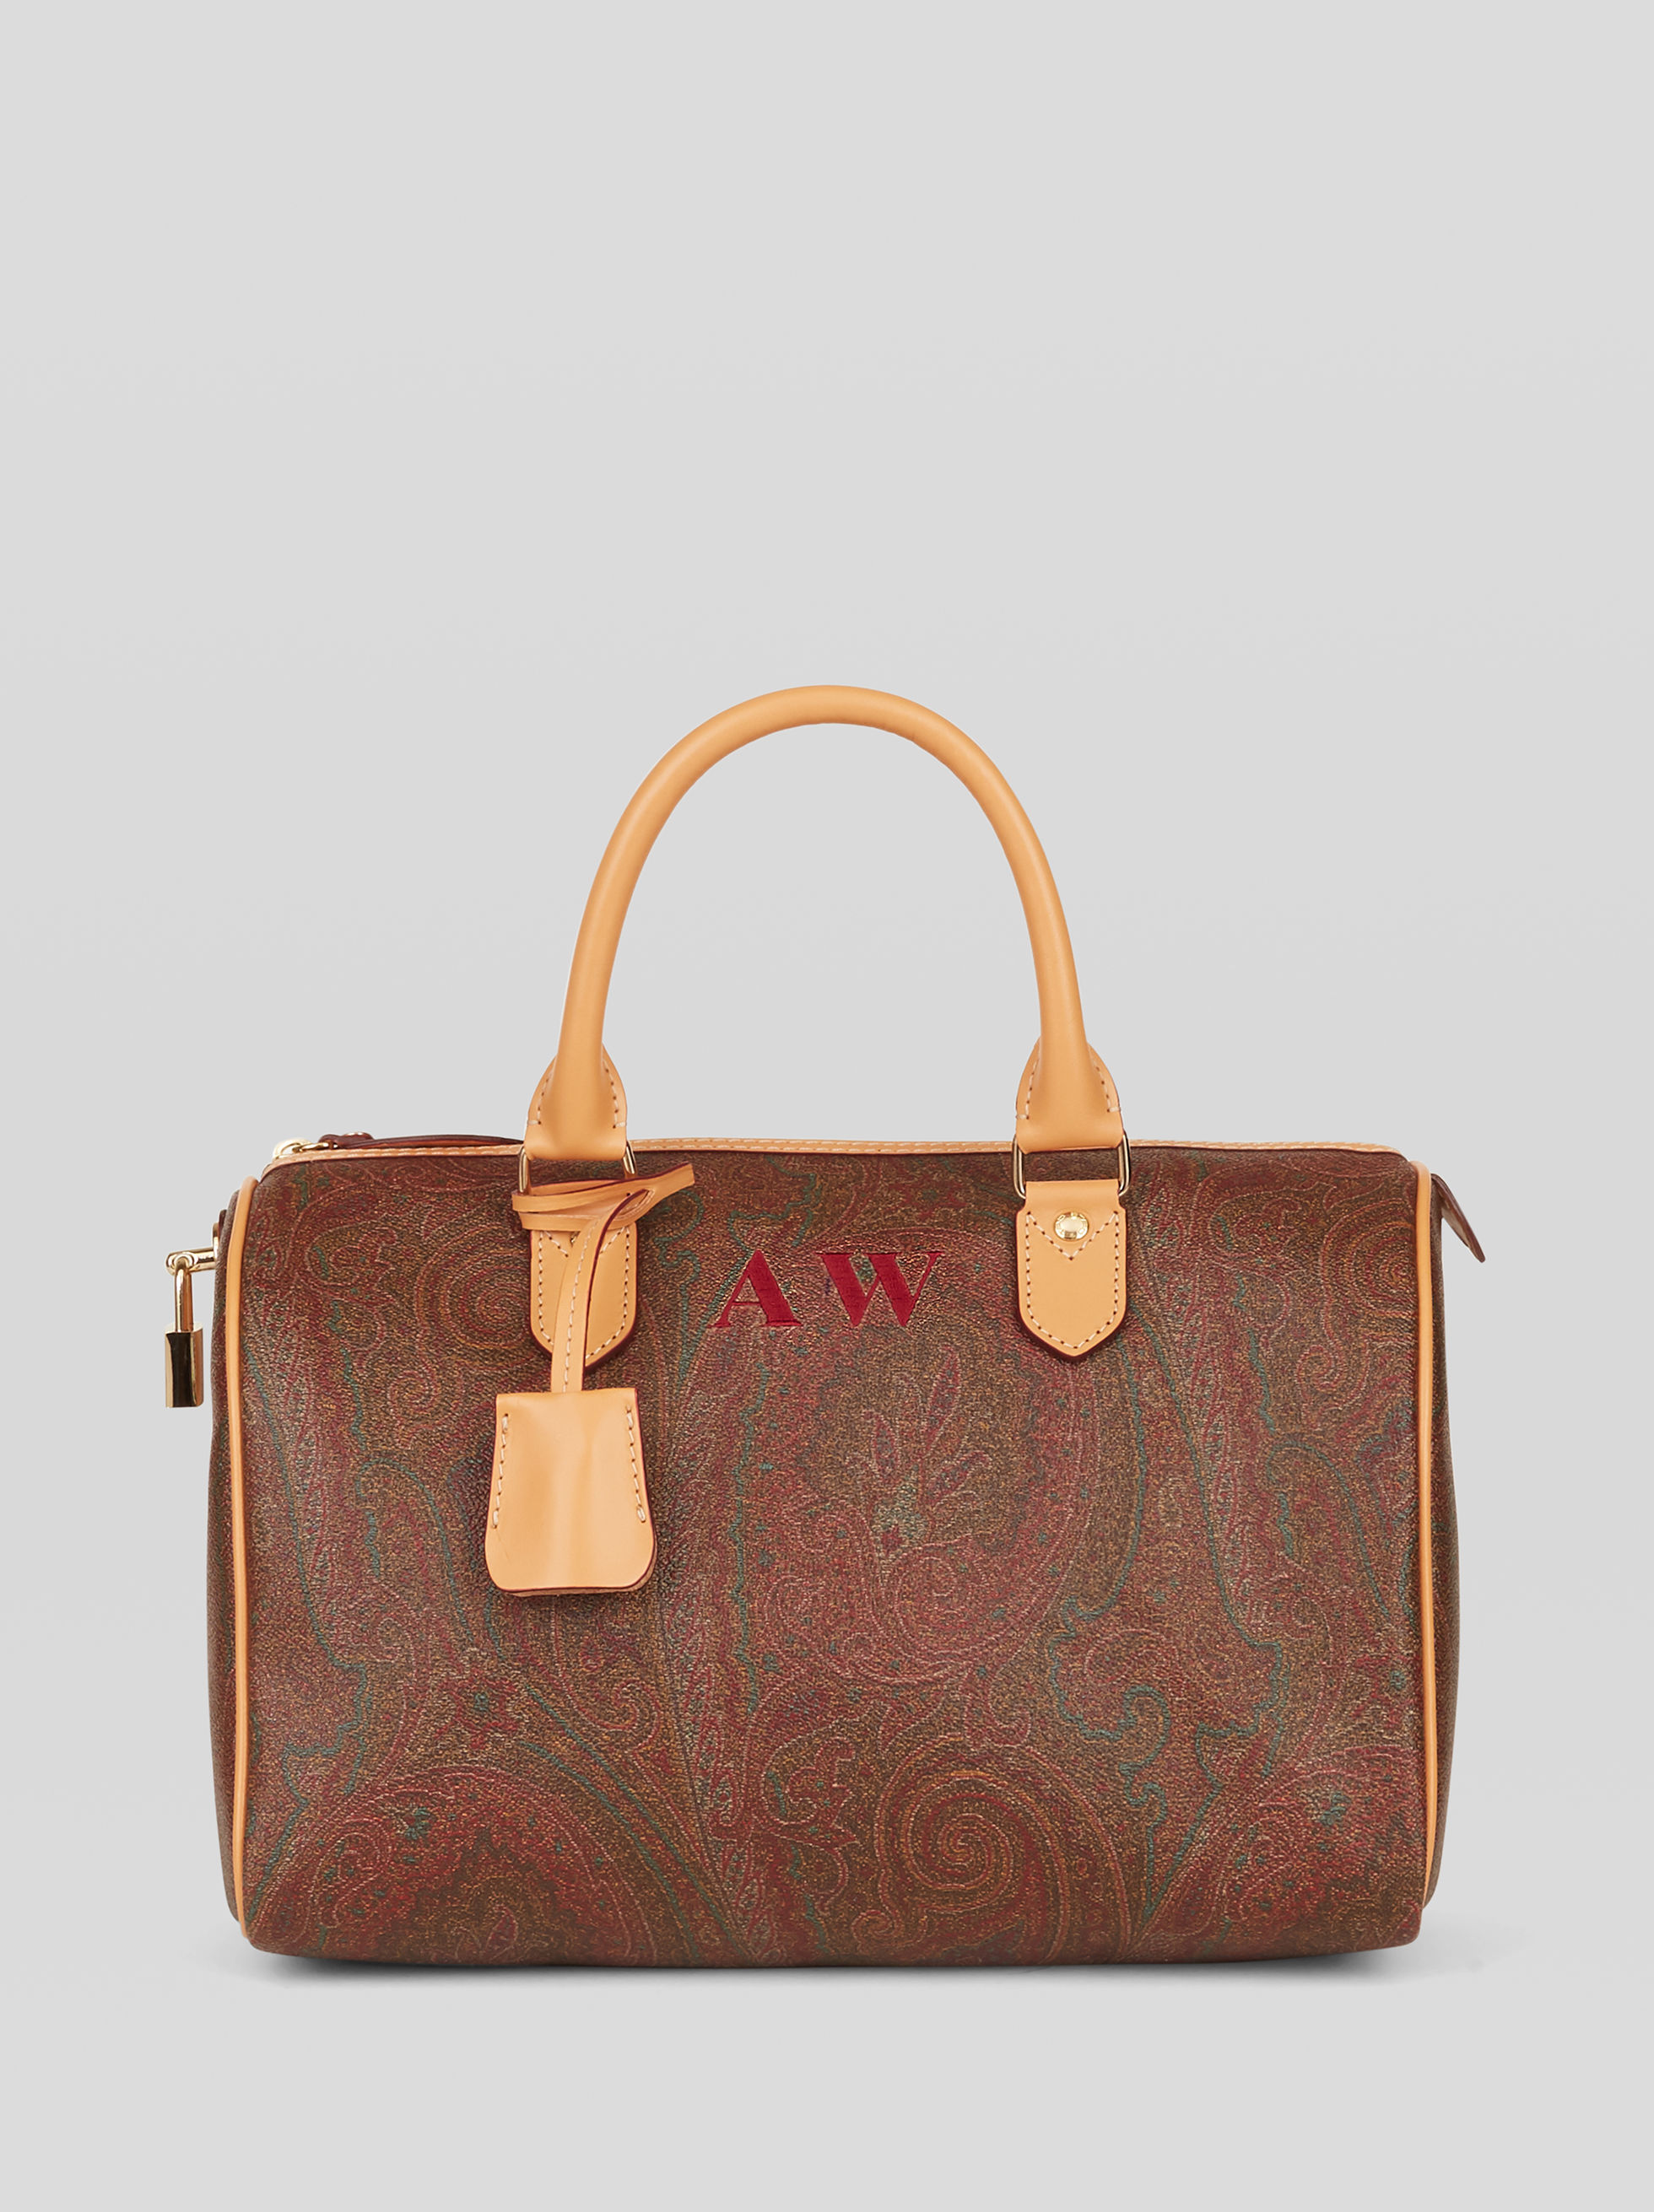 PAISLEY BOSTON BAG